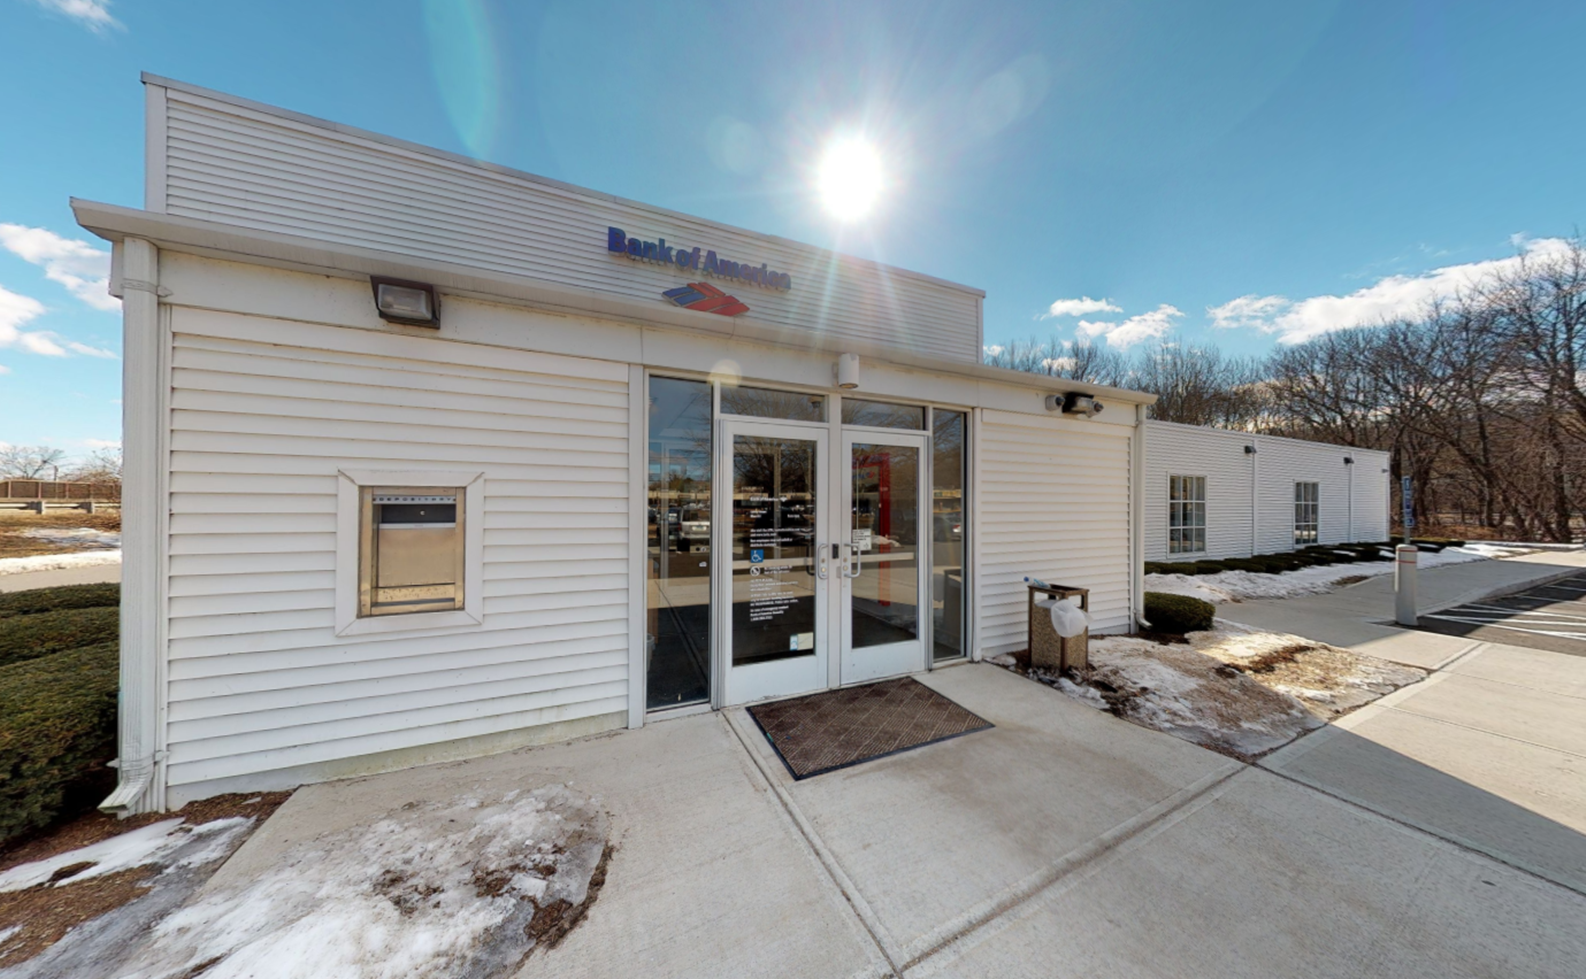 Bank of America financial center with drive-thru ATM   10 Cold Spring Rd, Rocky Hill, CT 06067